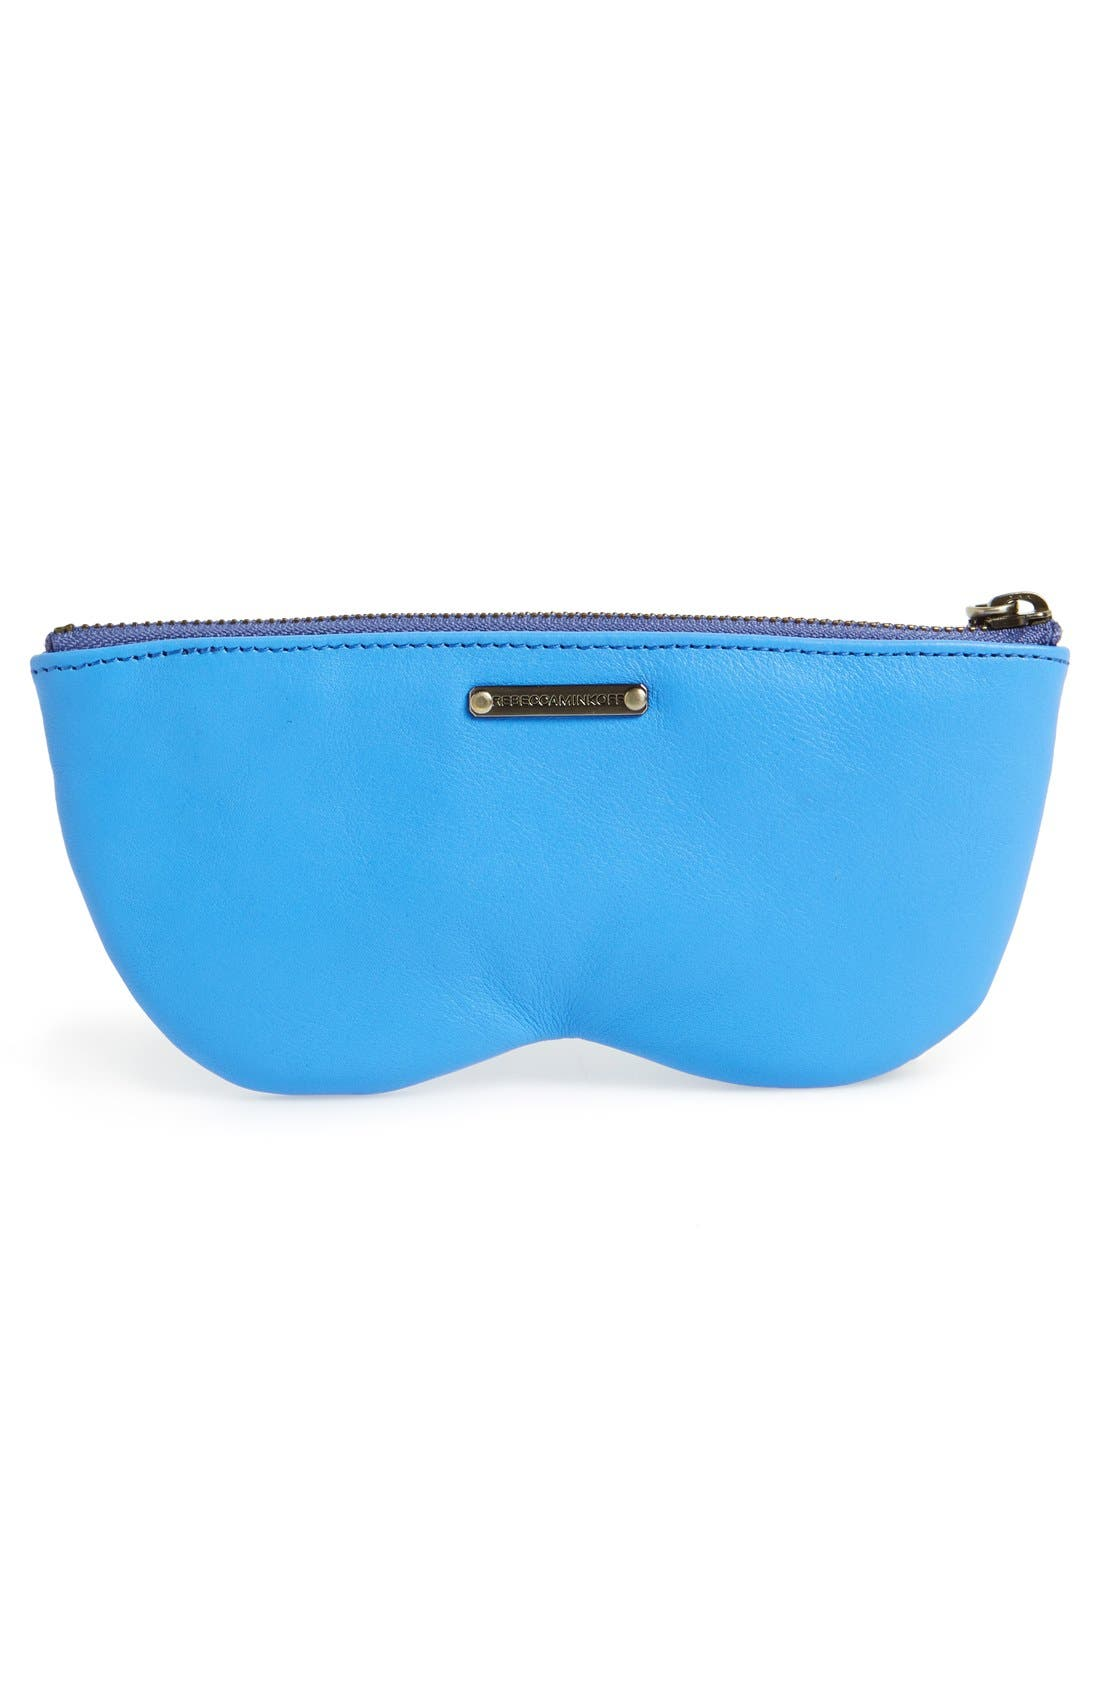 Alternate Image 2  - Rebecca Minkoff Sunglasses Pouch